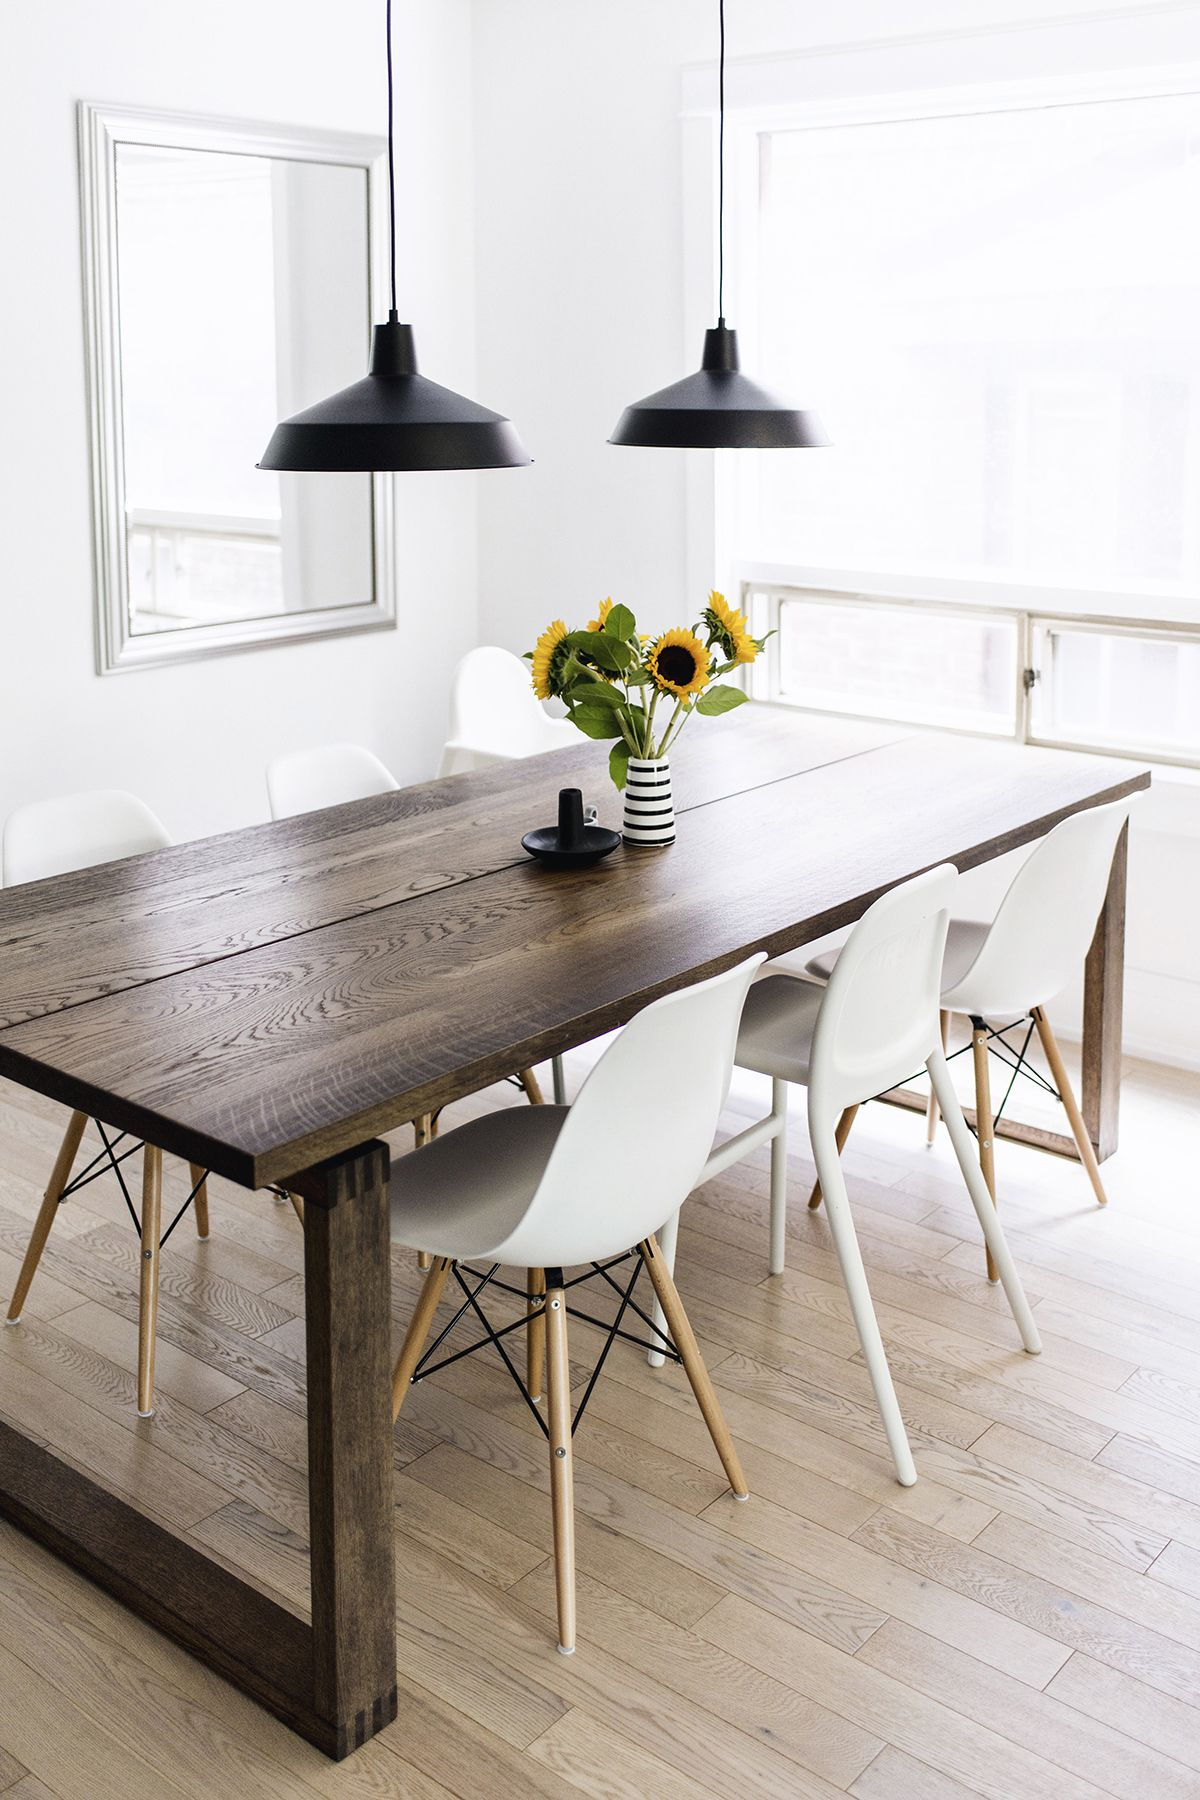 Scandinavian Inspired Dining Room M Rbyl Nga Table Eames Chairs Black War